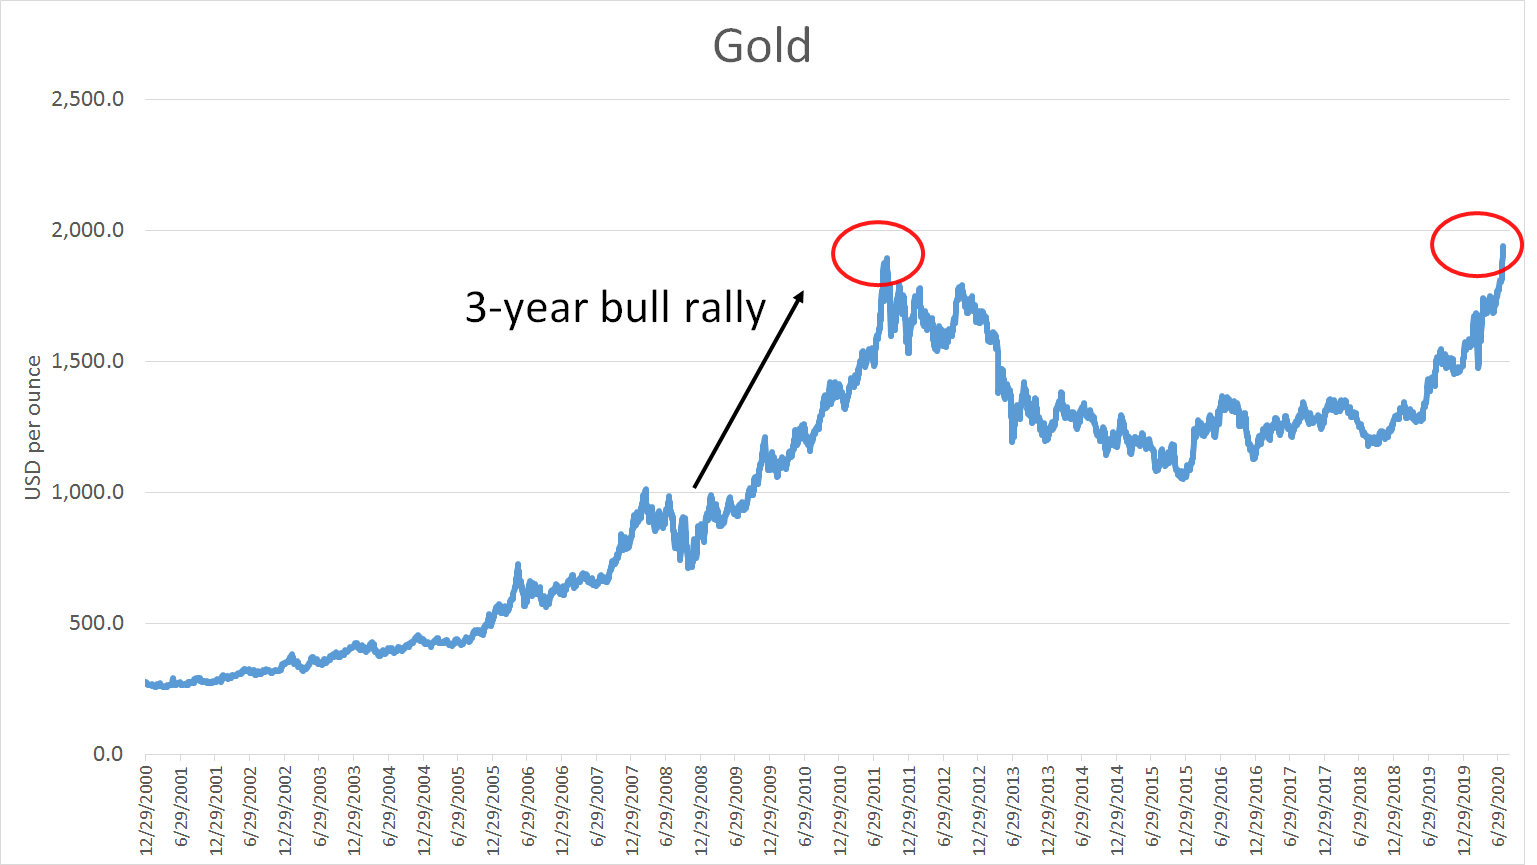 Gold price today July 28: May not stop increase until hitting $4,000